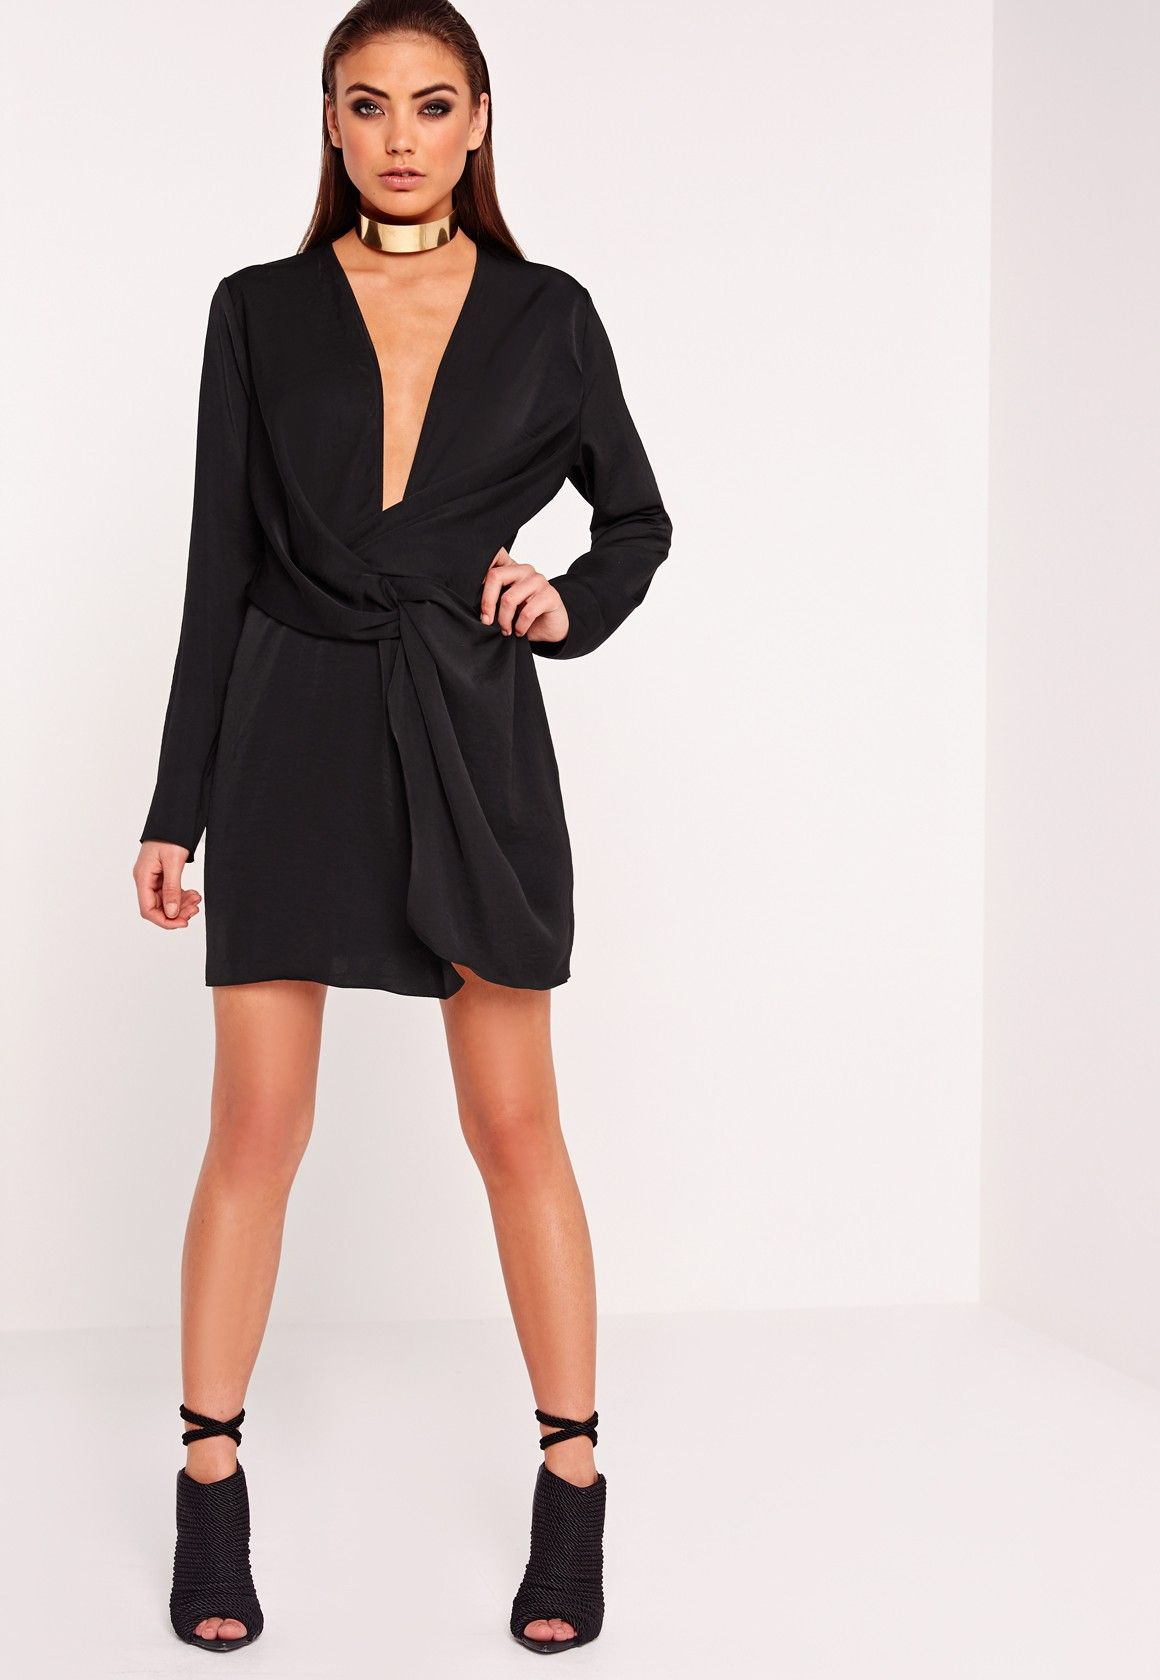 deb2fb11d656 Wrap yourself in our luxe Peace + Love satin mini dress! with a super sexy  plunging neckline, we love, want and need this beaut! In an always on trend  black ...